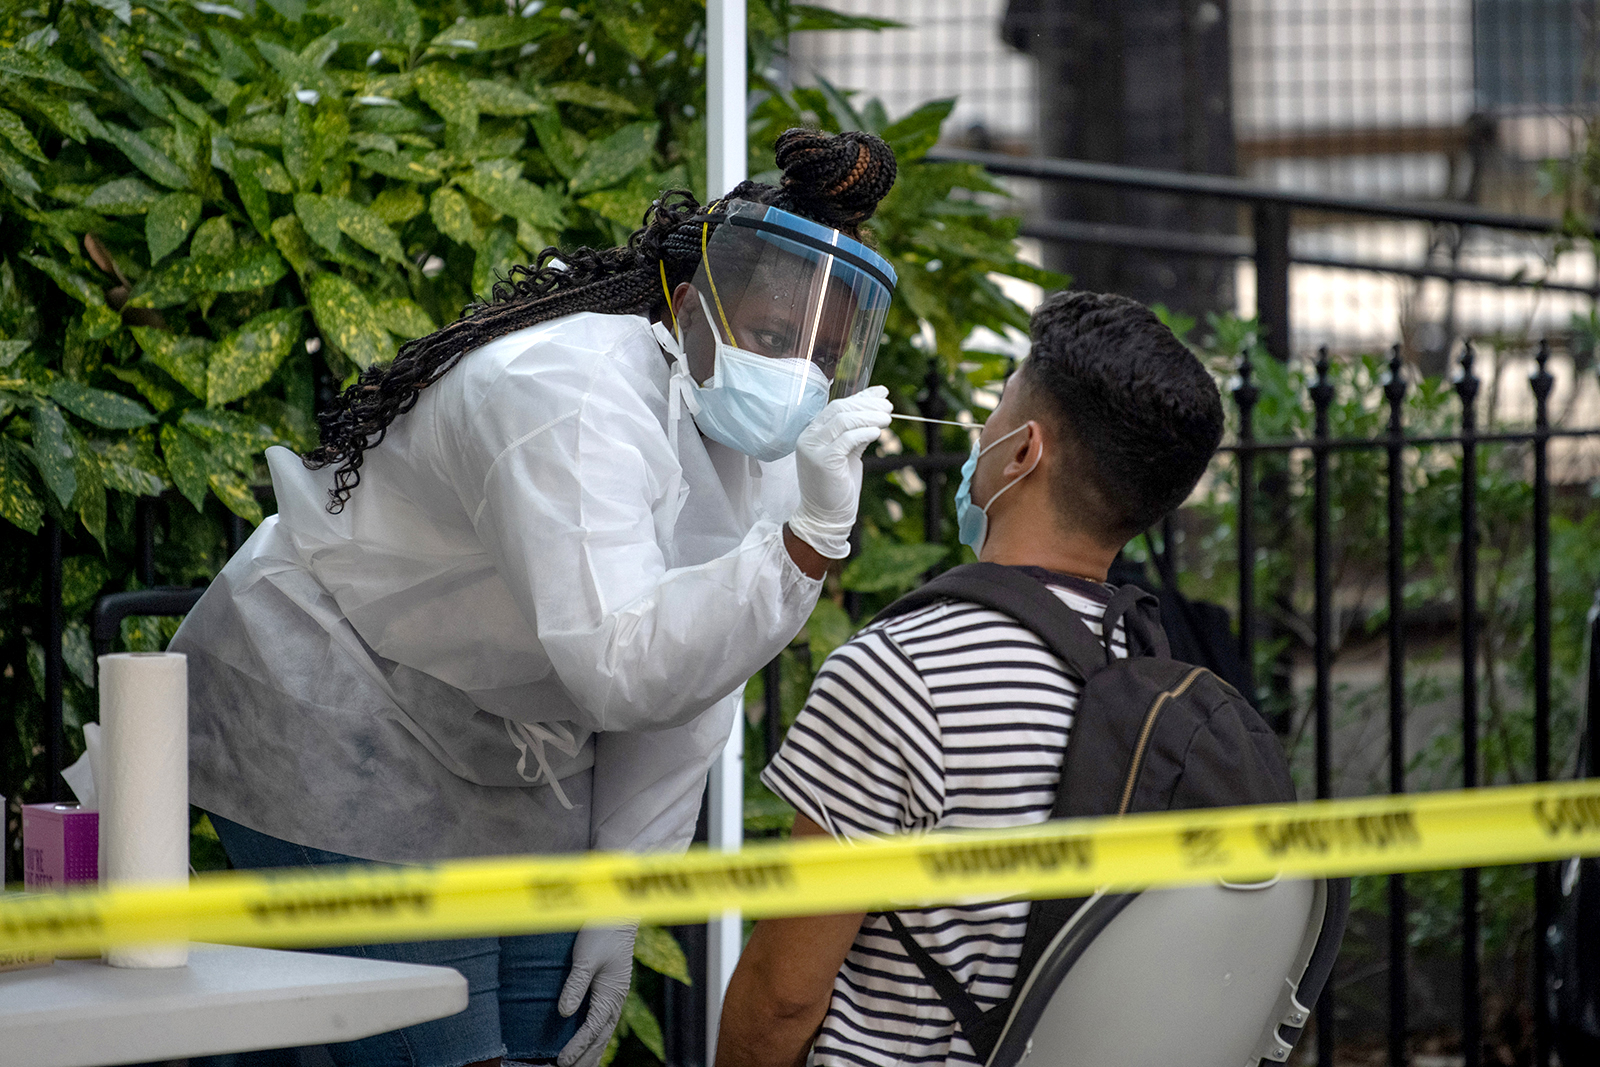 A medical worker wearing PPE administers a nasal swab test at a free coronavirus testing location outside Washington Square Park in New York on July 18.